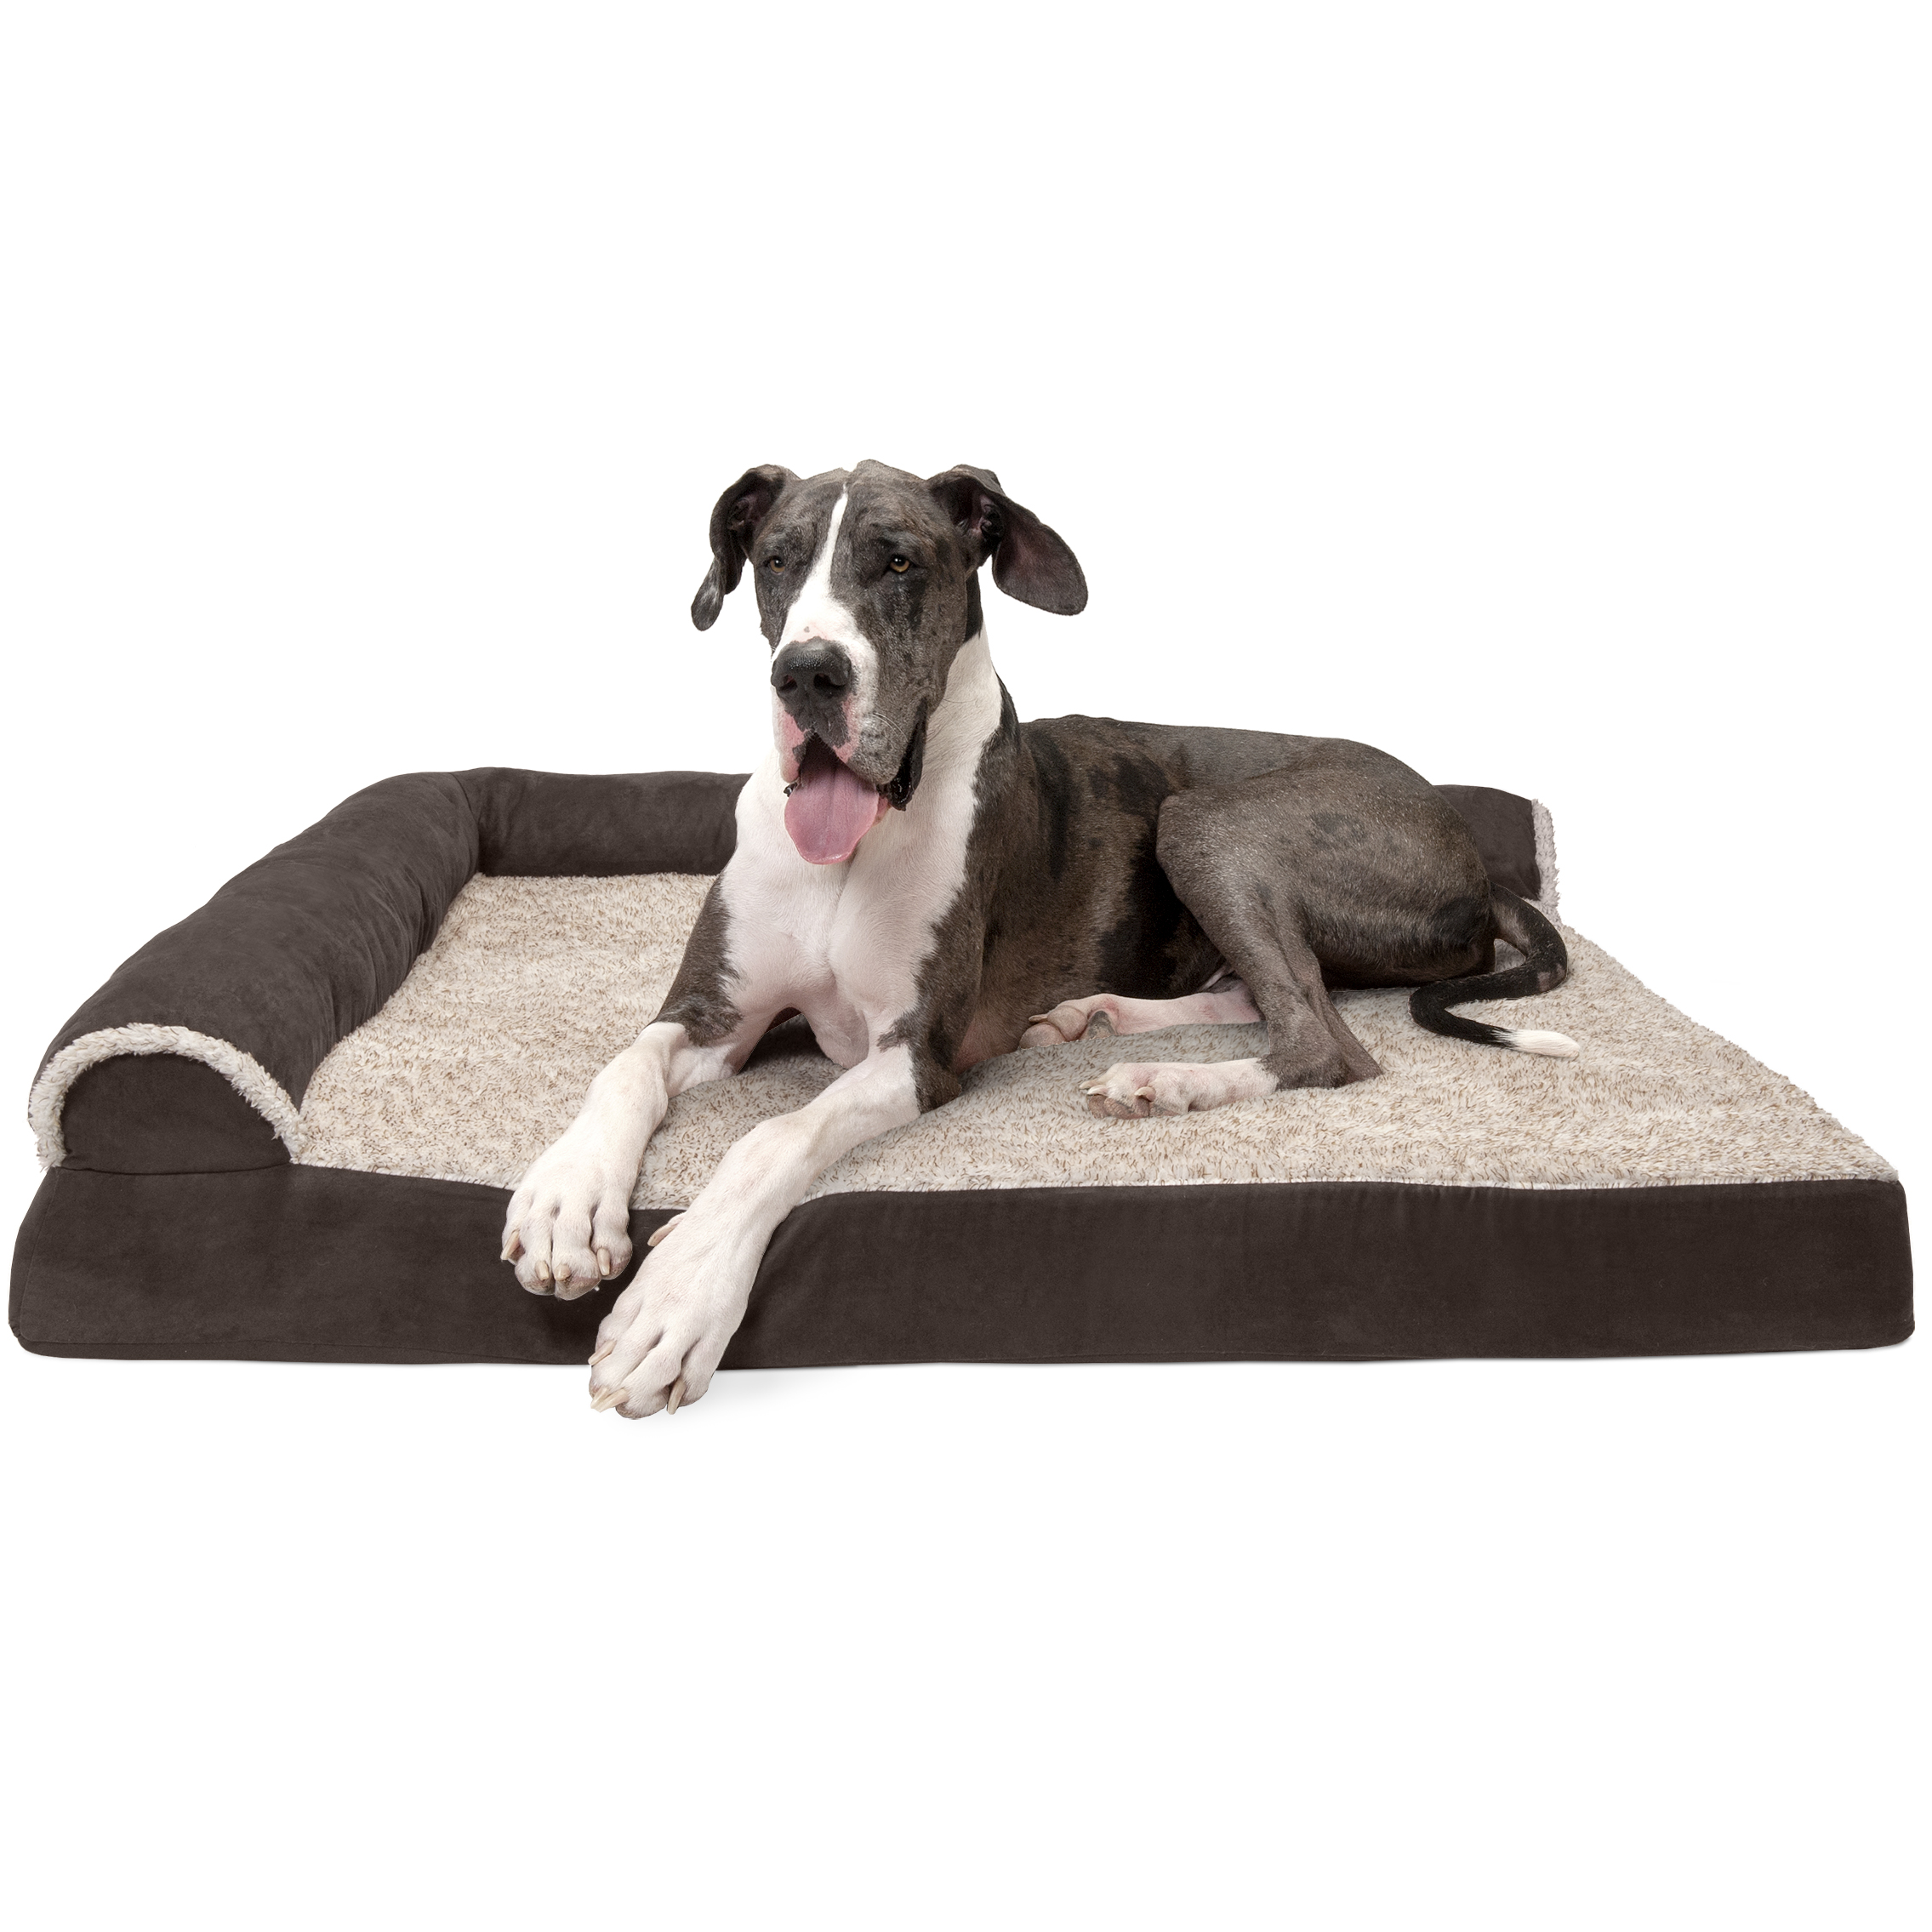 FurHaven Pet Dog Bed | Deluxe Orthopedic Faux Fur & Suede L-Shaped Chaise Couch Pet Bed for Dogs & Cats, Espresso, Jumbo Plus